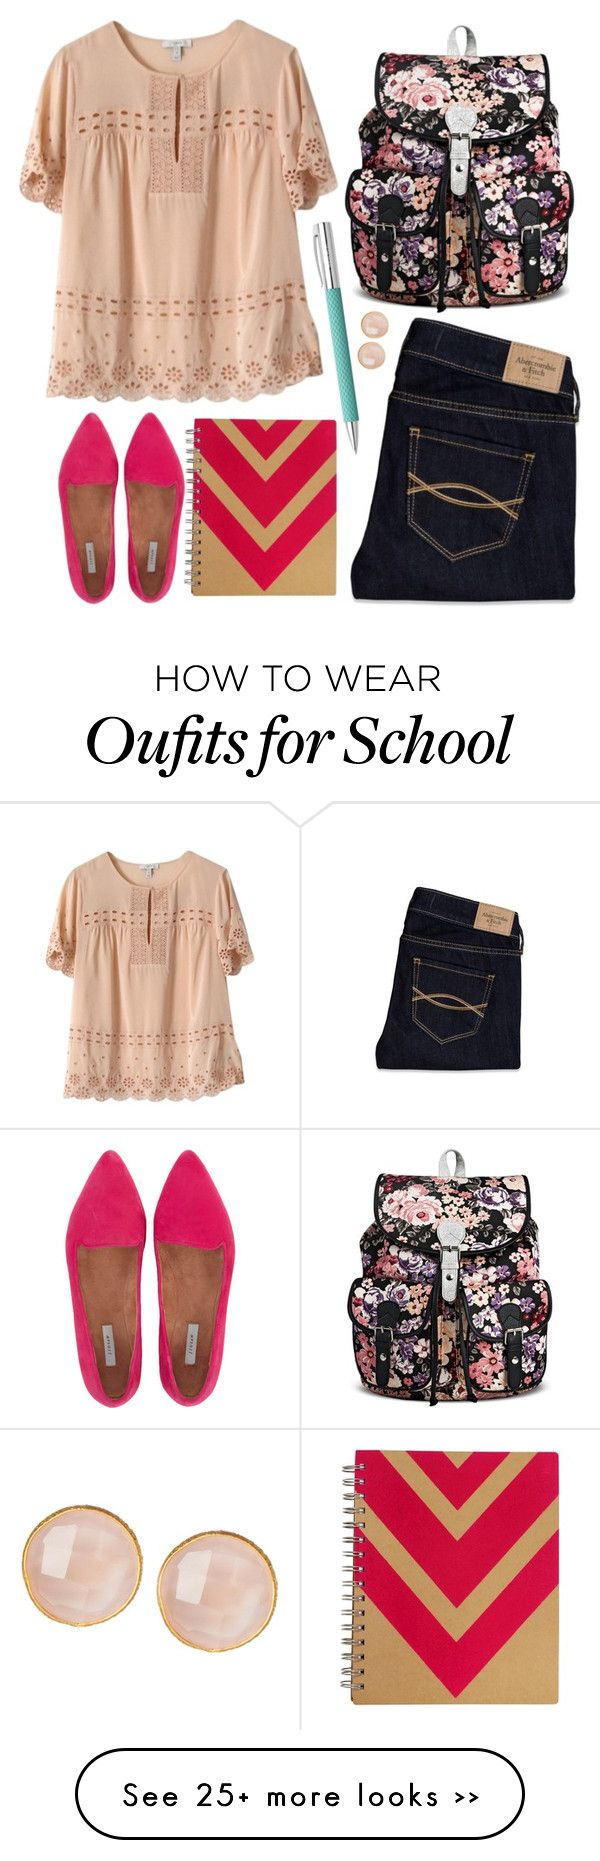 """Back 2 School"" by prettyorchid22 on Polyvore"